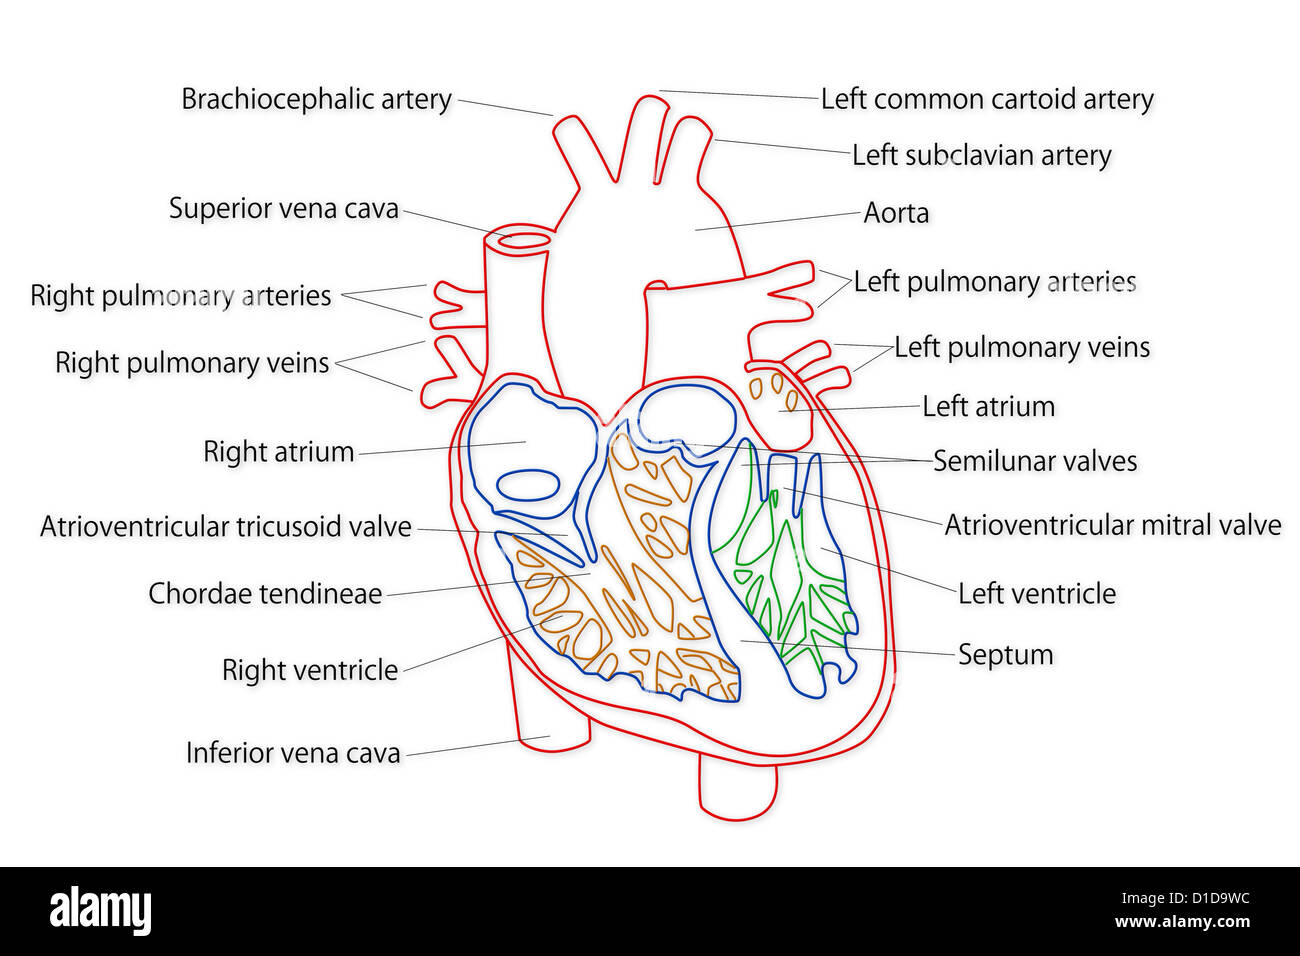 Human heart structure stock photo 52538904 alamy human heart structure ccuart Image collections